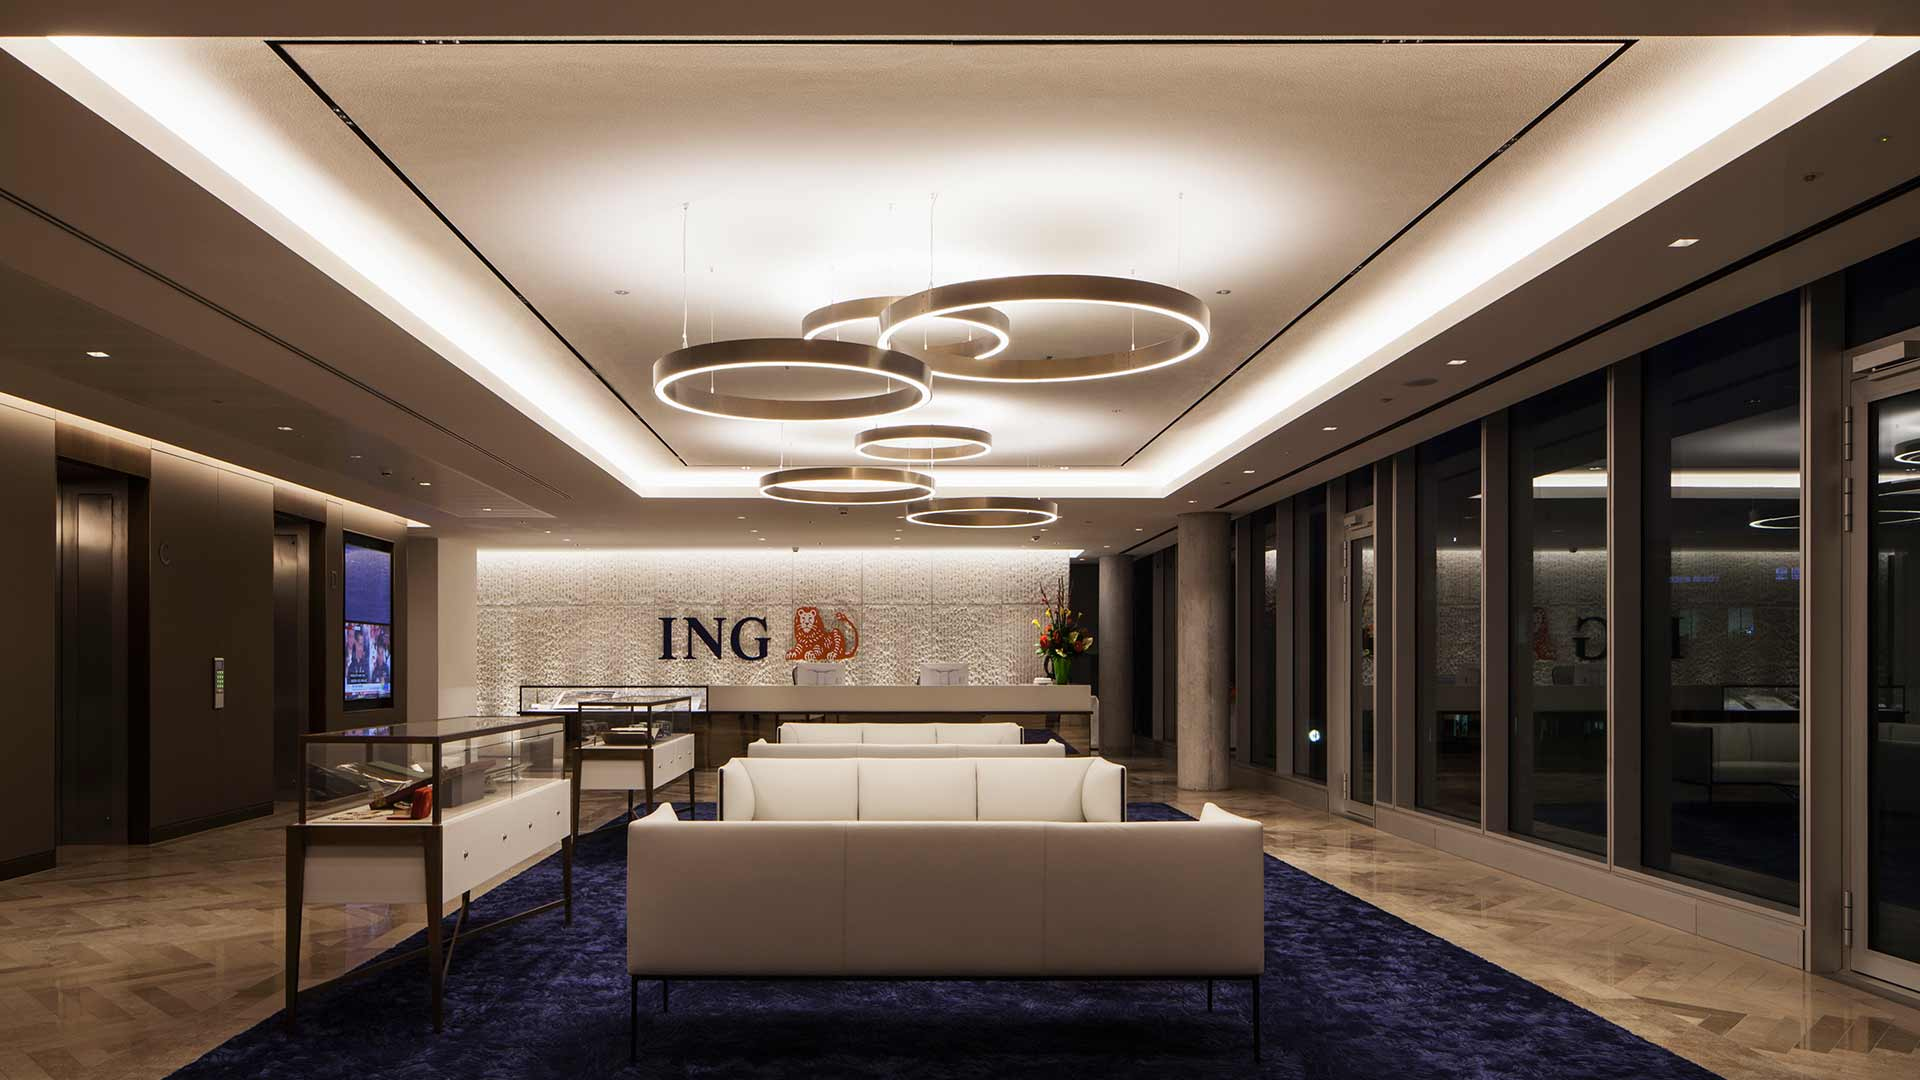 Reception Area Suspended Luminaire Interconnected Rings Lighting Design Nulty